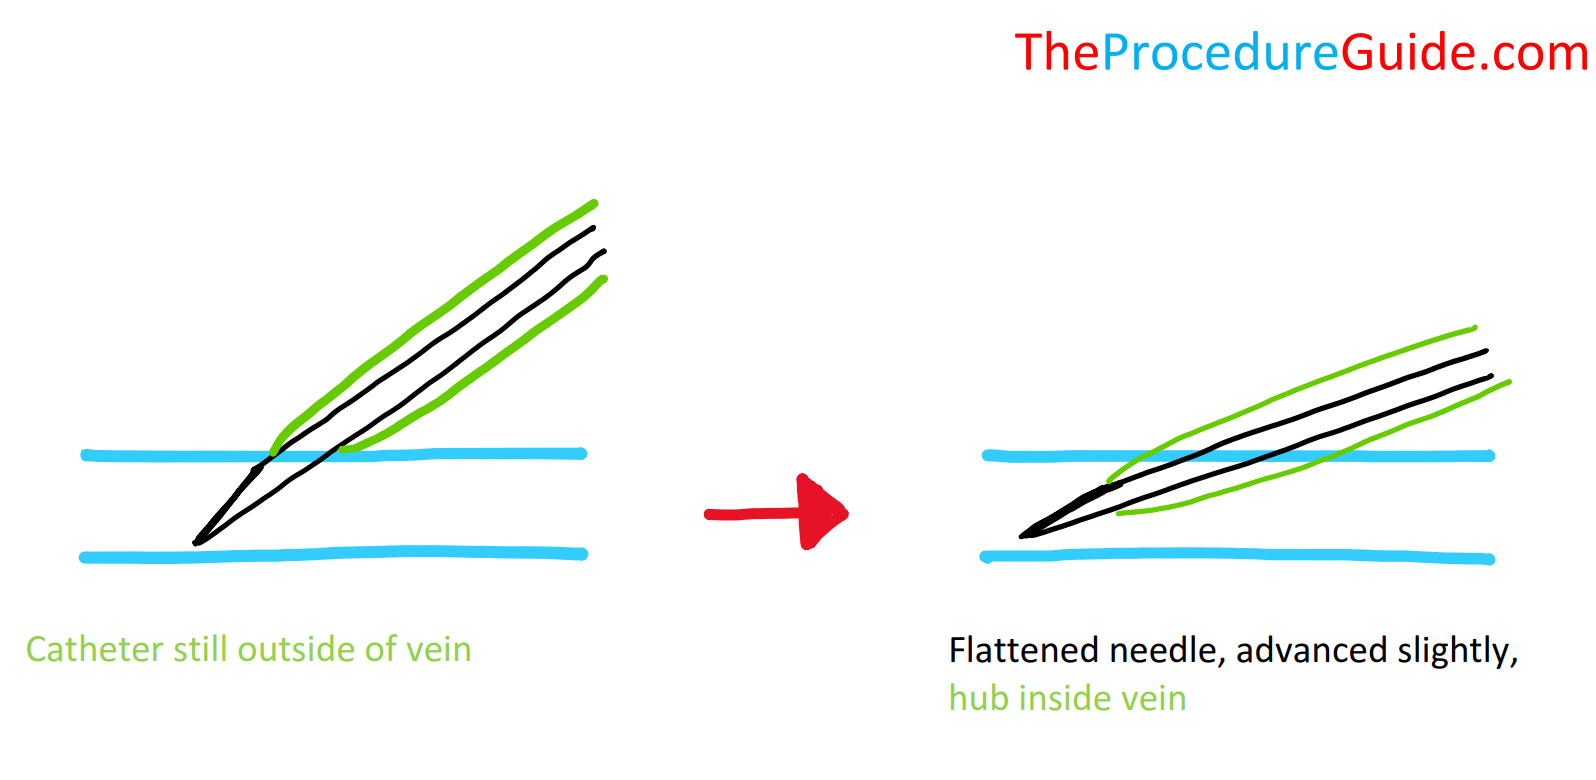 Peripheral IV insertion with needle tip and hub inside vein